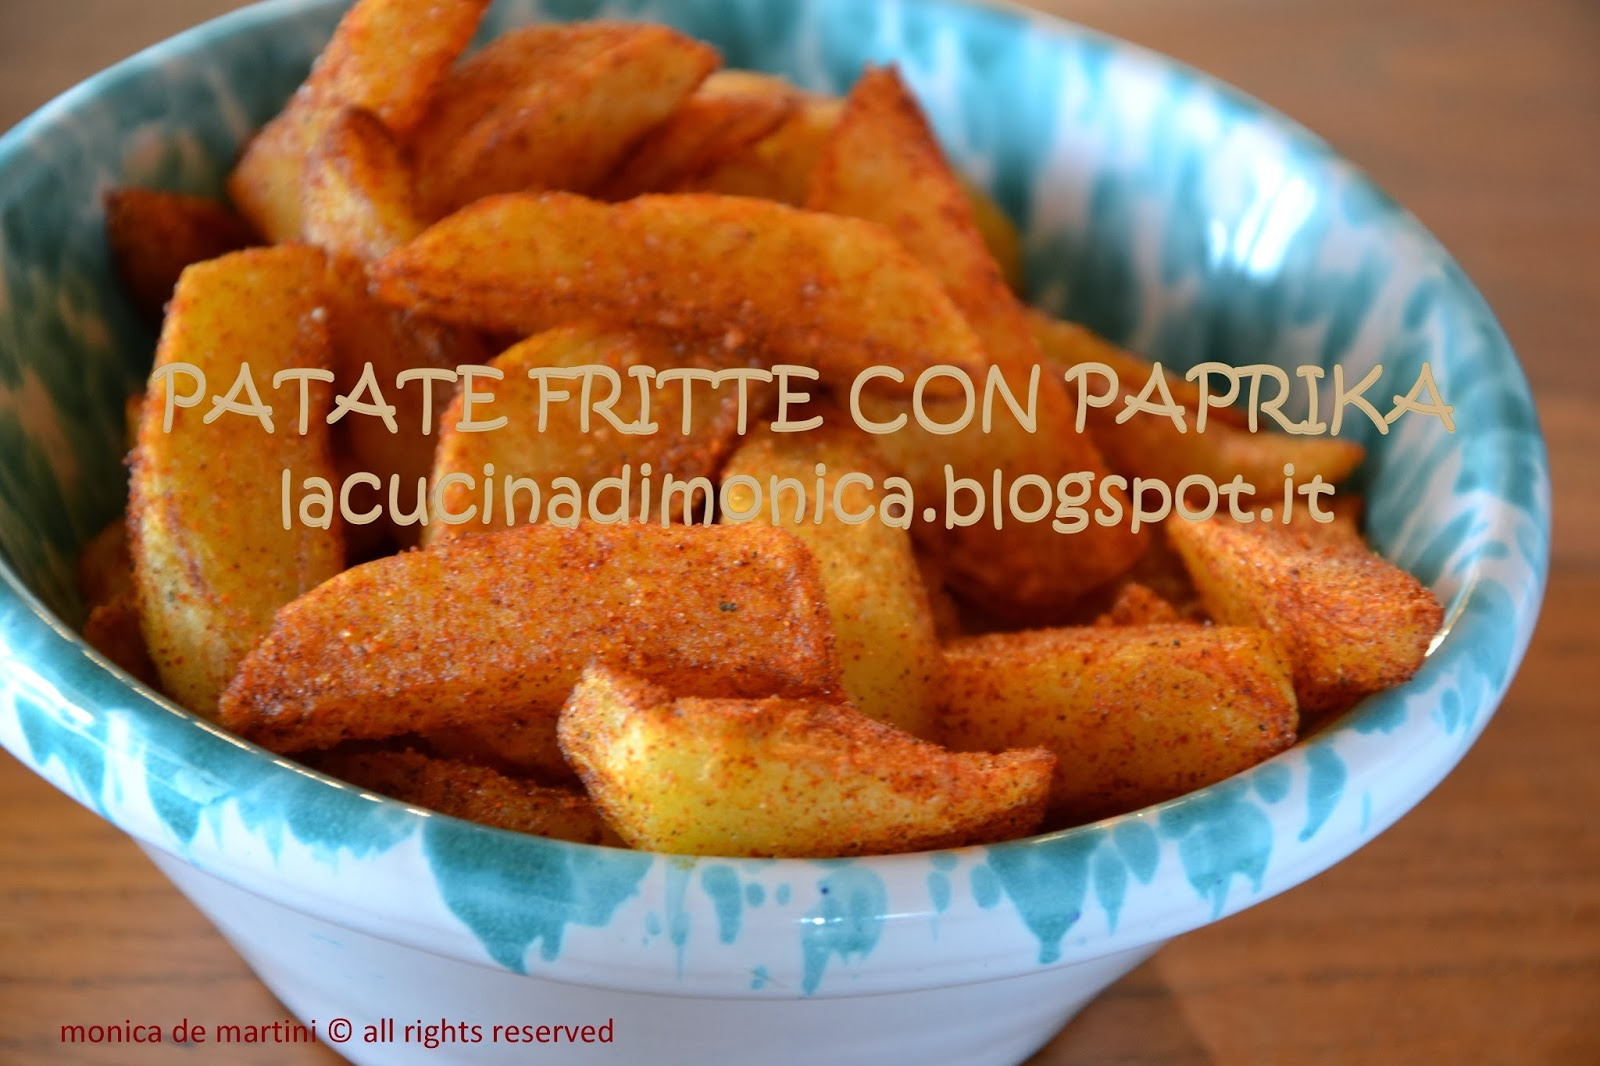 patate fritte con paprika